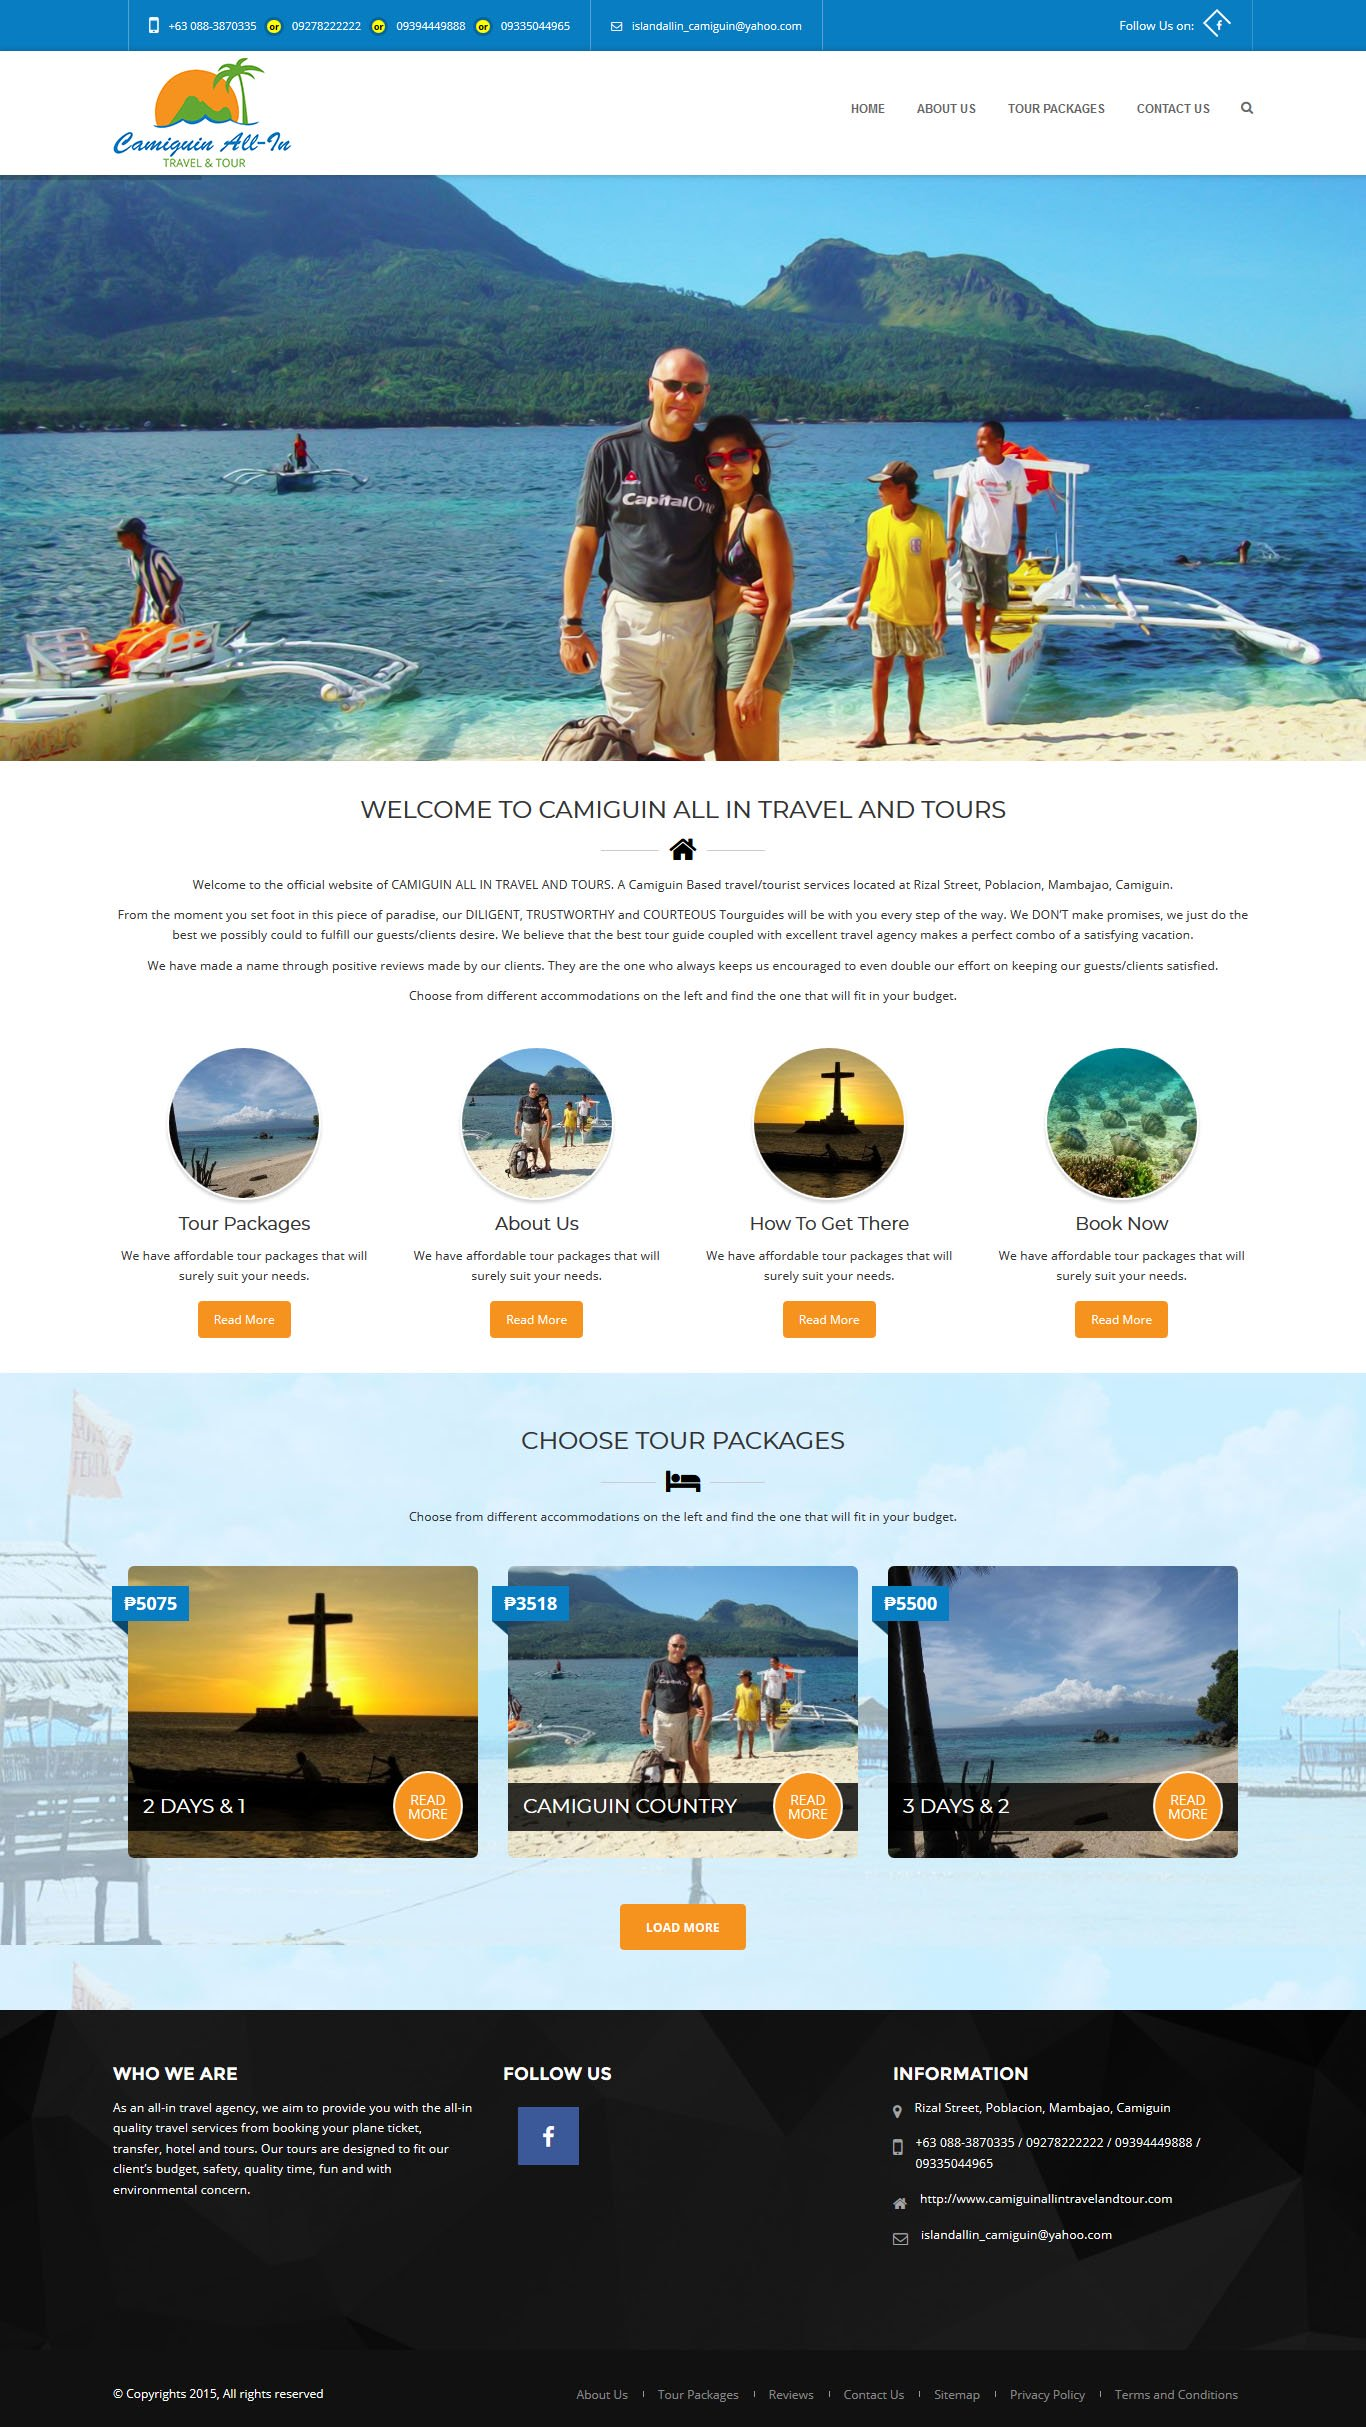 Camiguin All in Travel and Tour